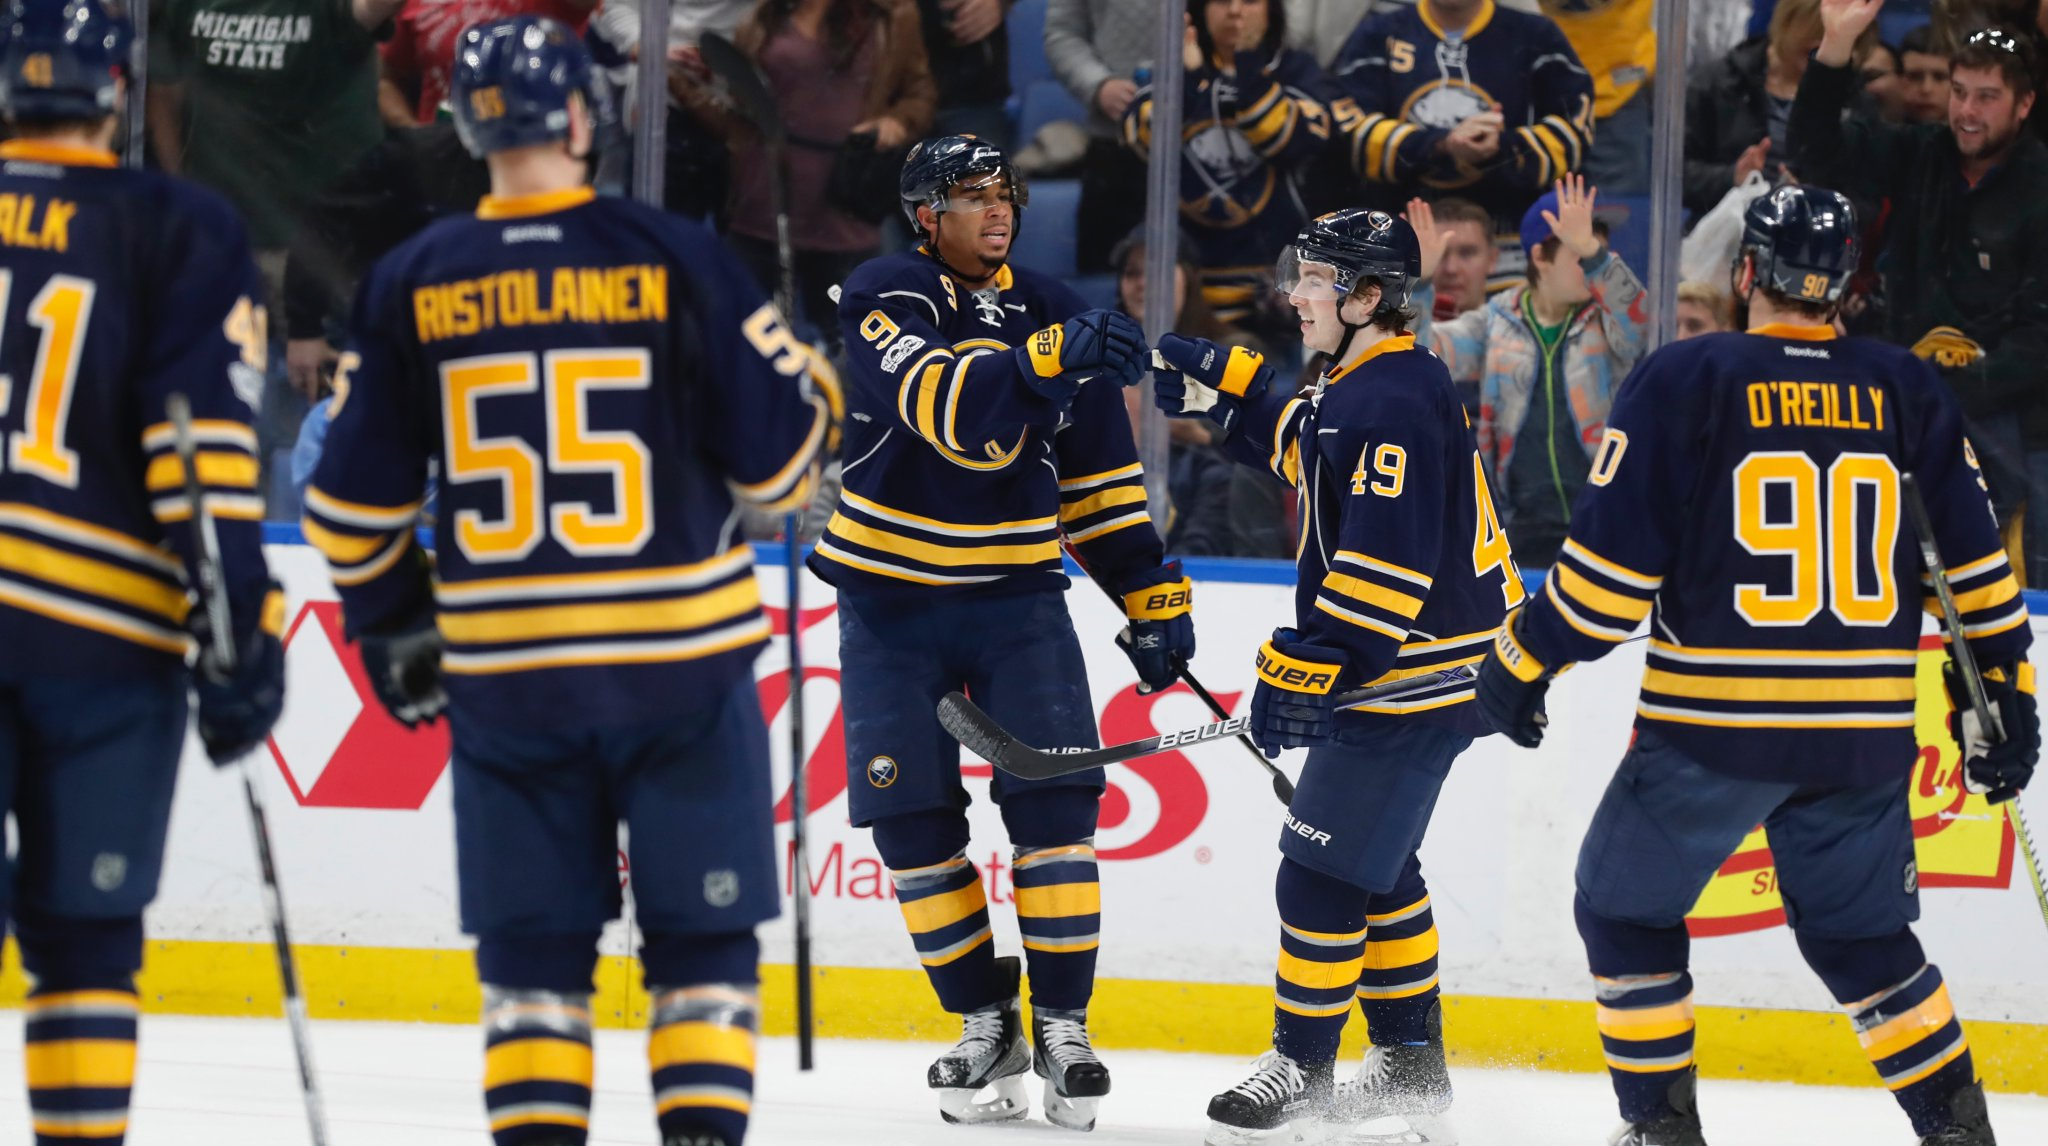 Goal-scorer Evander Kane (9) congratulates C.J. Smith on the assist and his first point in Smith's NHL debut Sunday. (Harry Scull Jr./Buffalo News)